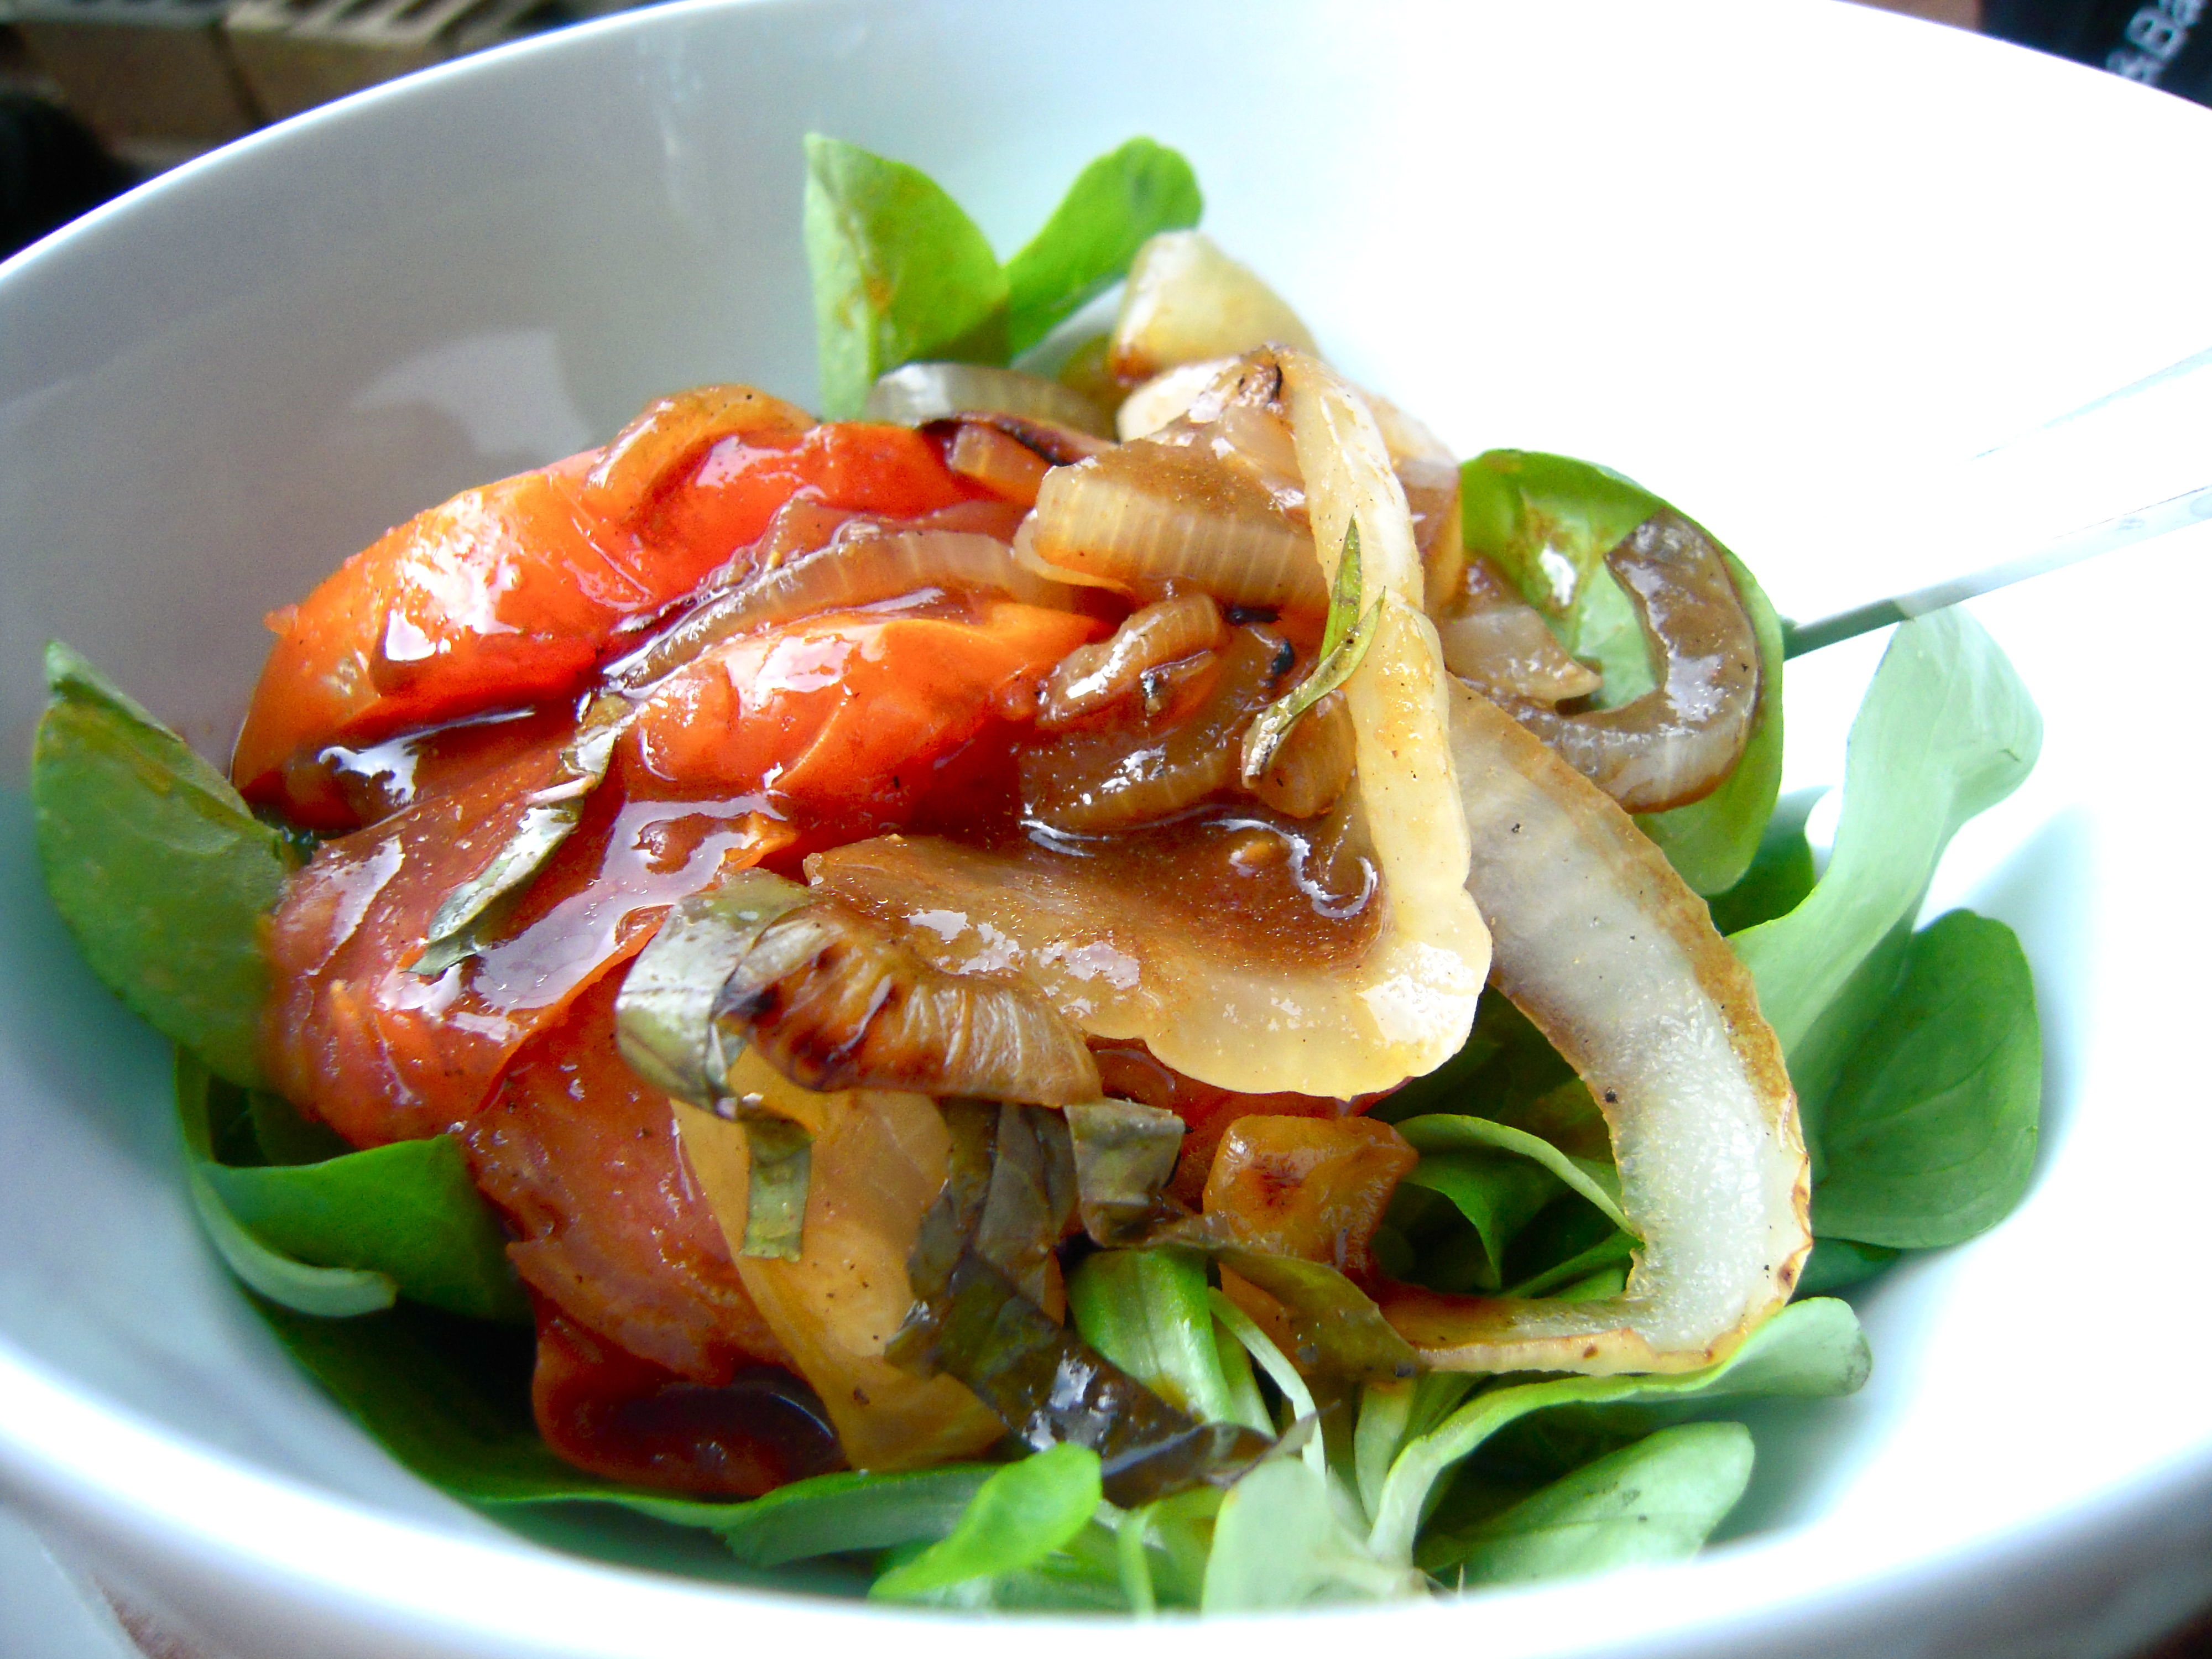 Grilled Tomato and Onion Salad | The Newlywed Chefs